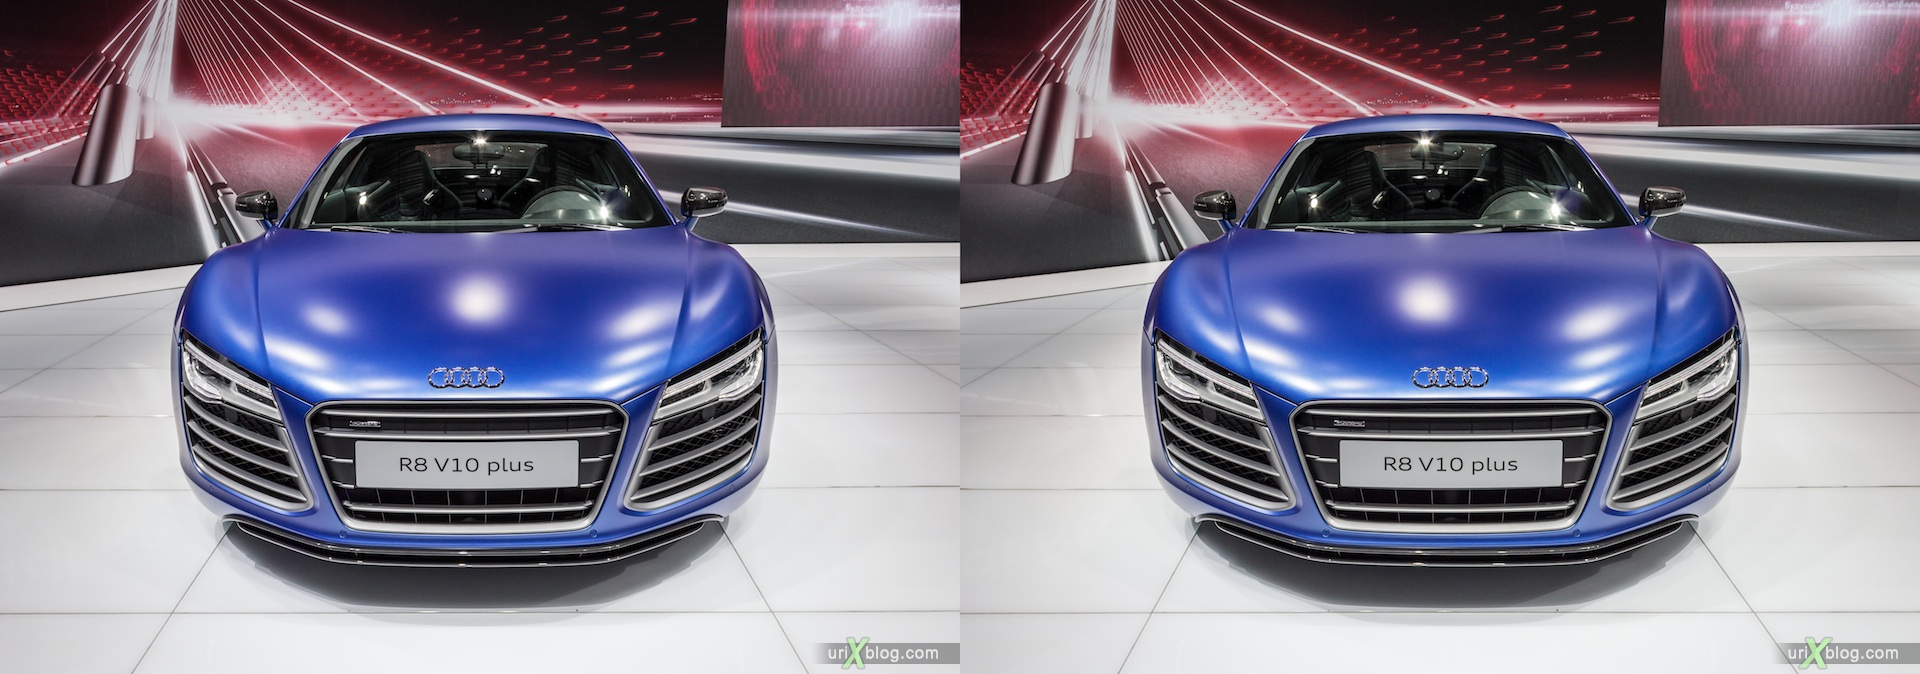 2012, Audi R8 V10 plus, Moscow International Automobile Salon, auto show, 3D, stereo pair, cross-eyed, crossview